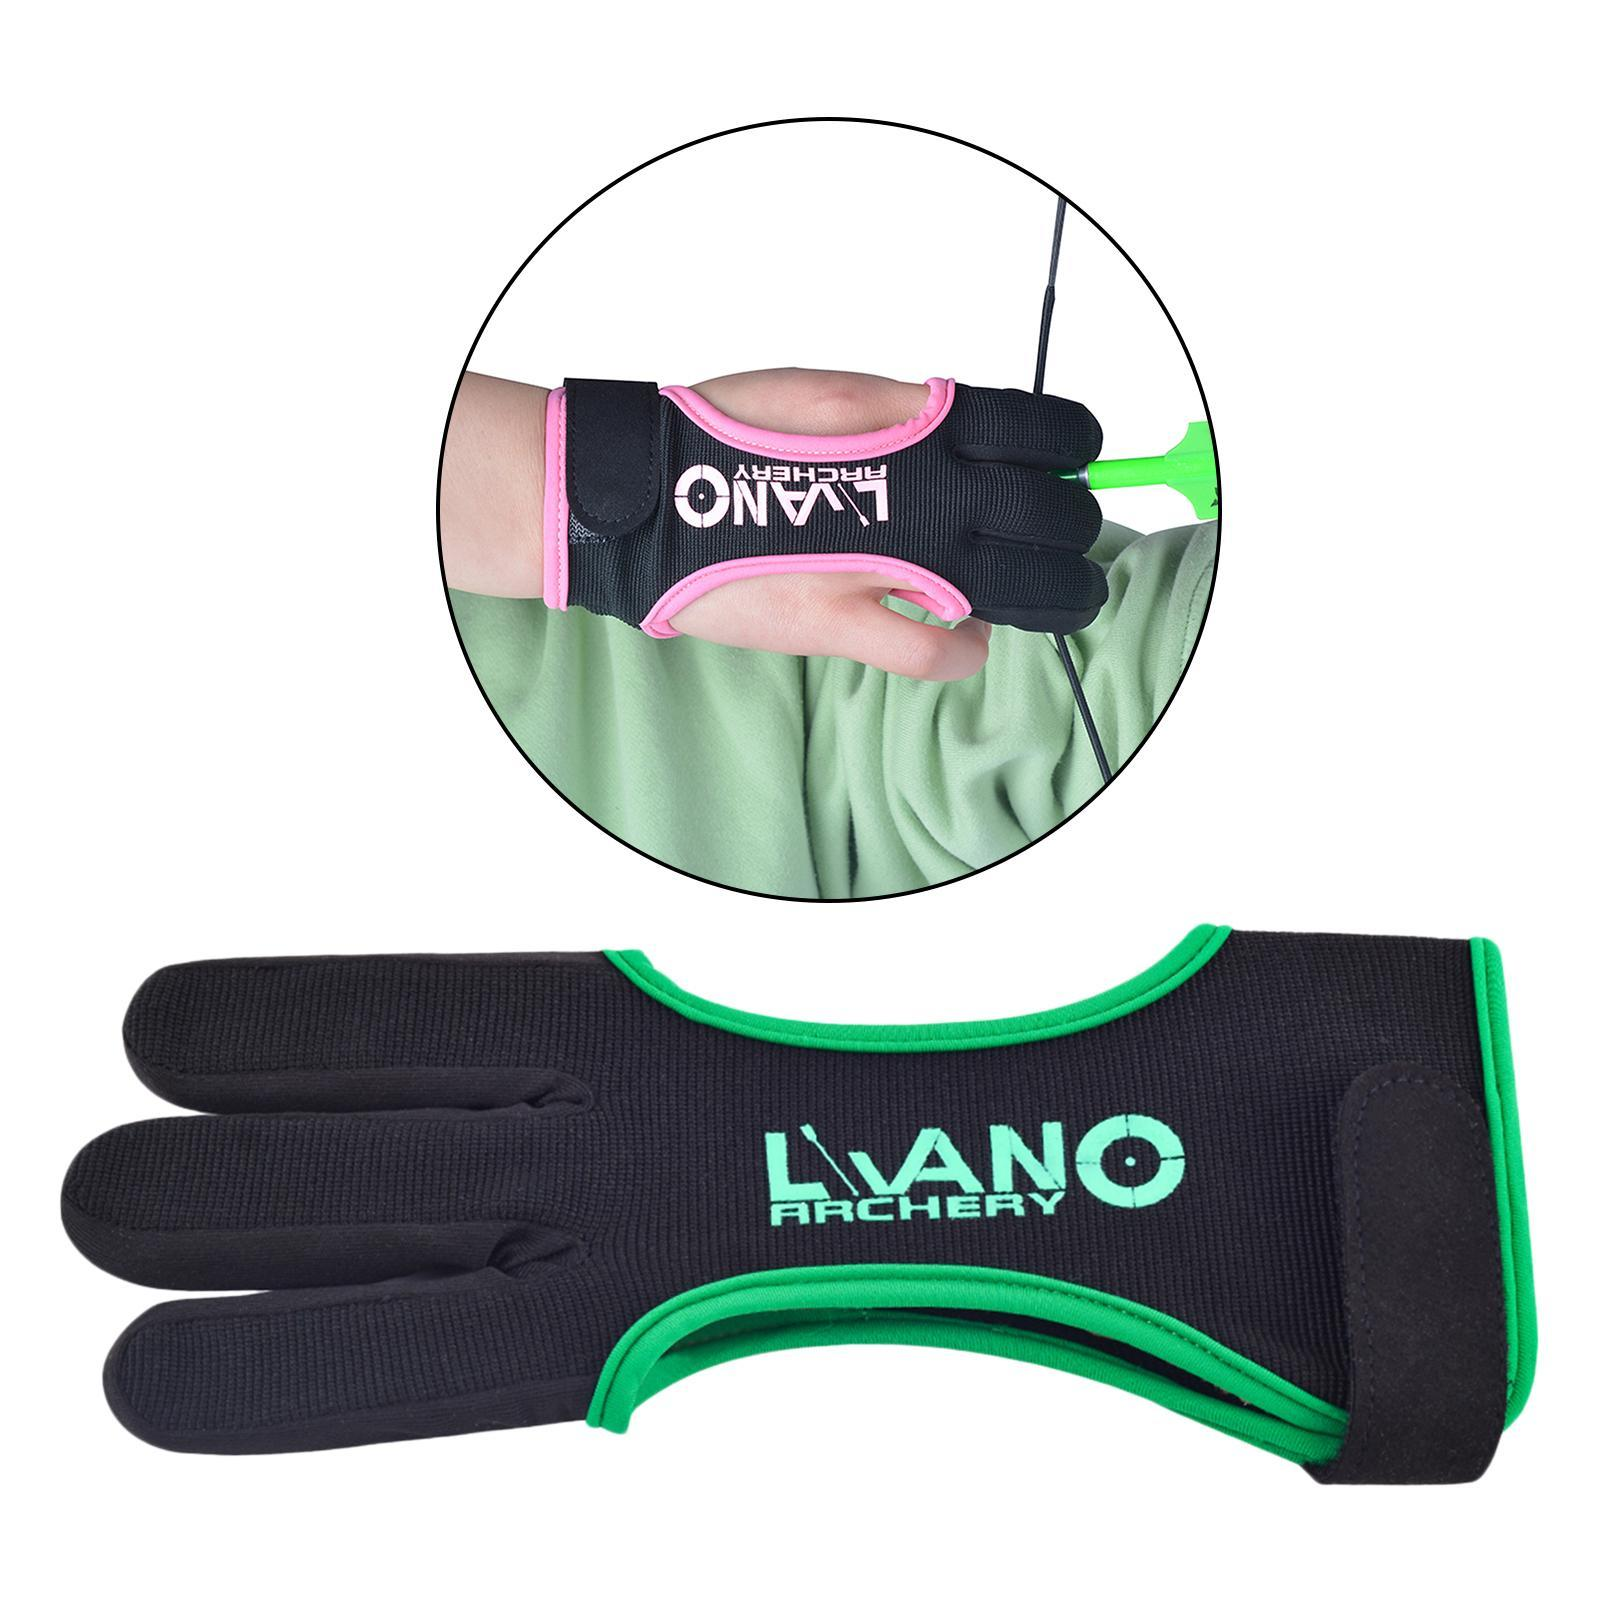 thumbnail 71 - Archery Glove for Recurve & Compound Bow 3 Finger Guard for Women Men Youth